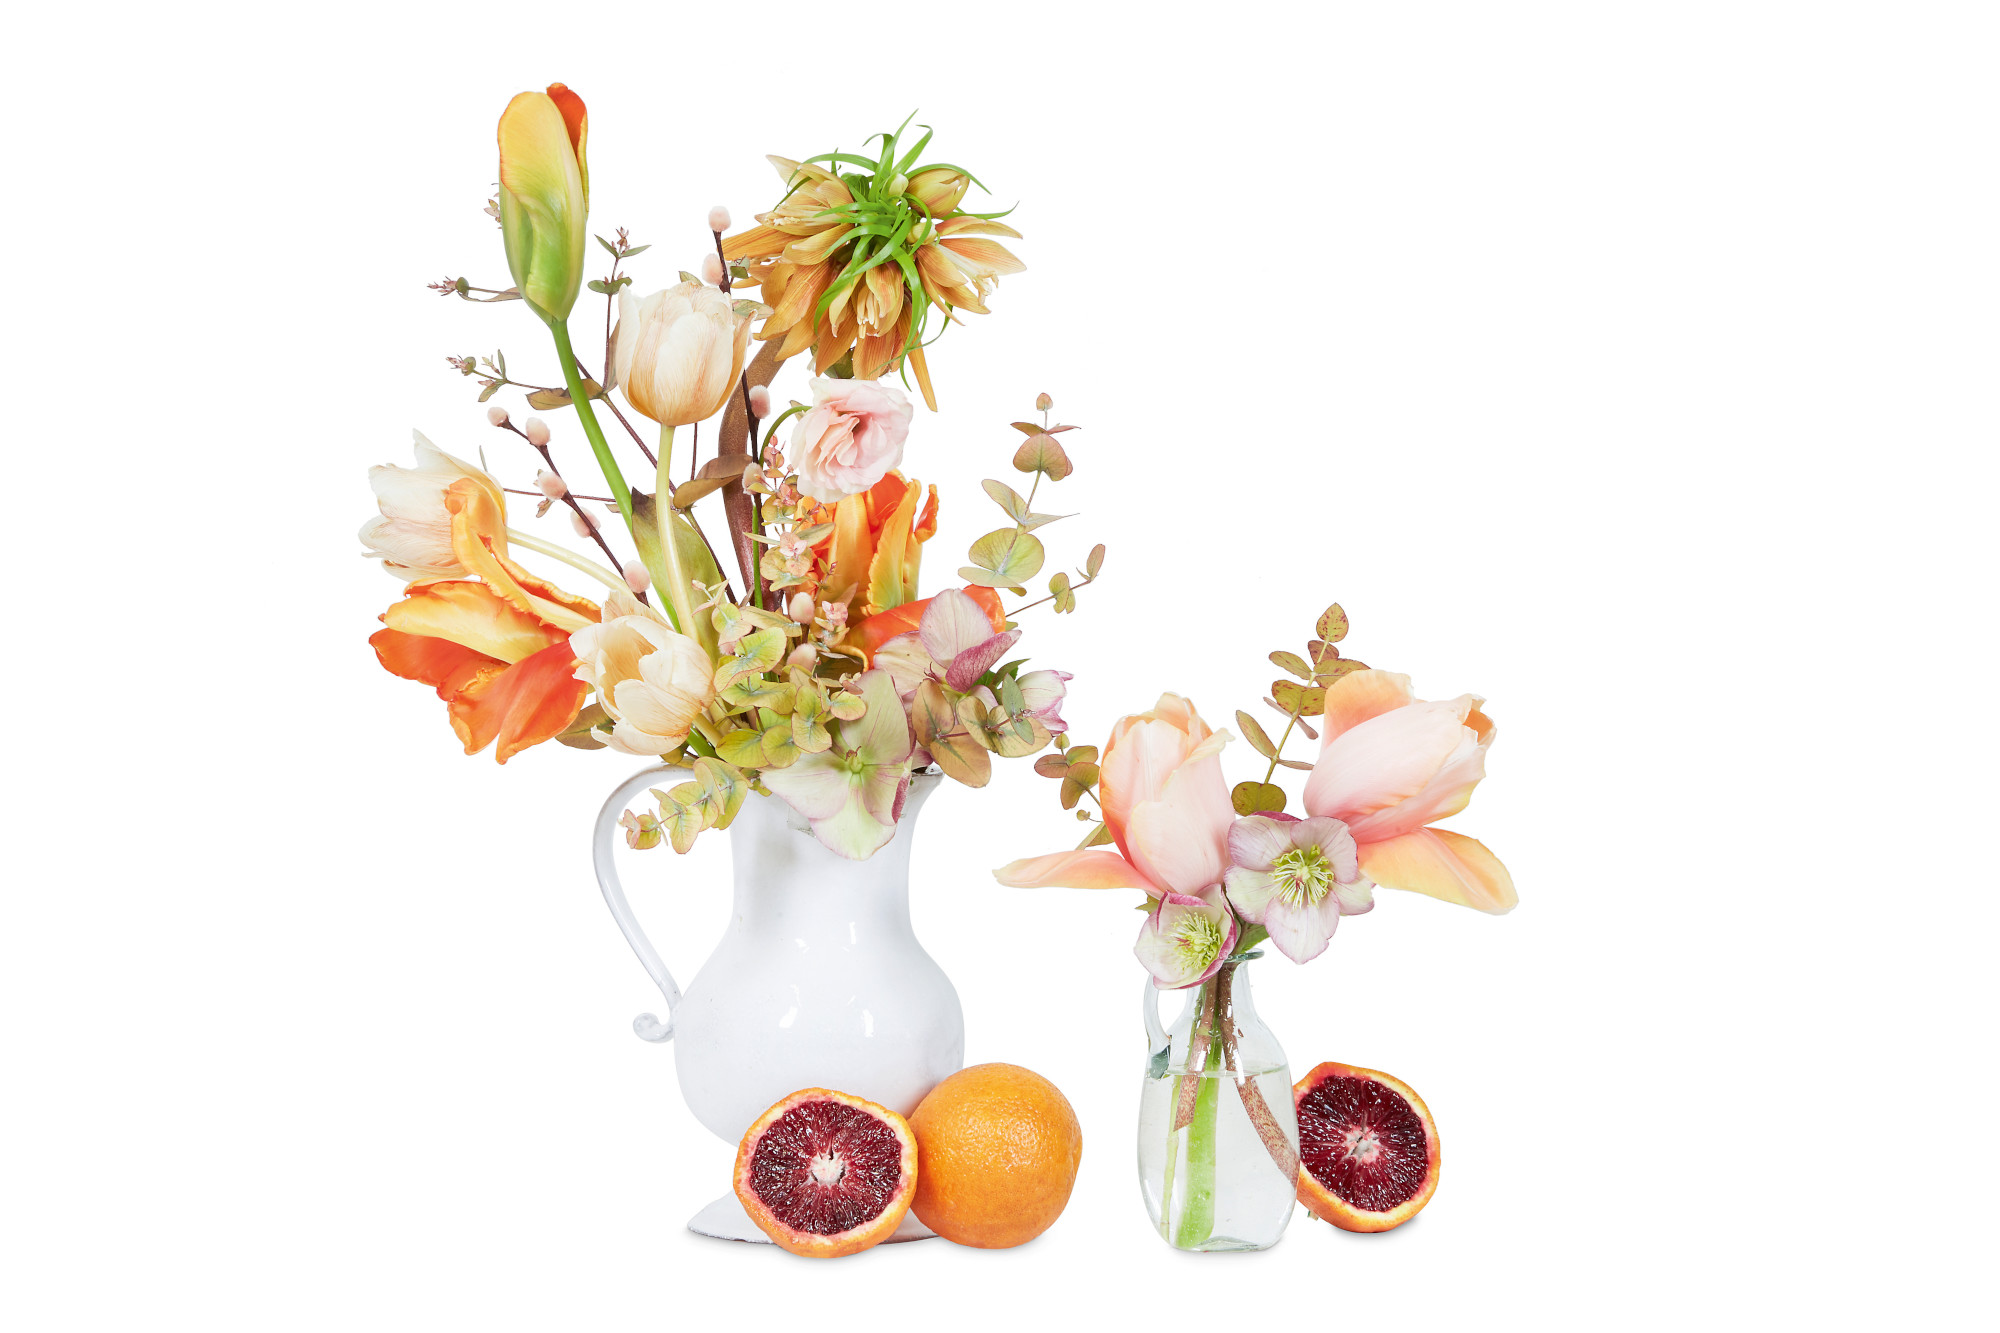 Accent Color: Orange, brown, and peach with burgundy accent. Crown imperial fritillary, Tulip, Blood orange, Ranunculus, Eucalyptus, Pussy willow. Employing vessels made of different materials, like glass and ceramic here, adds texture to a composition